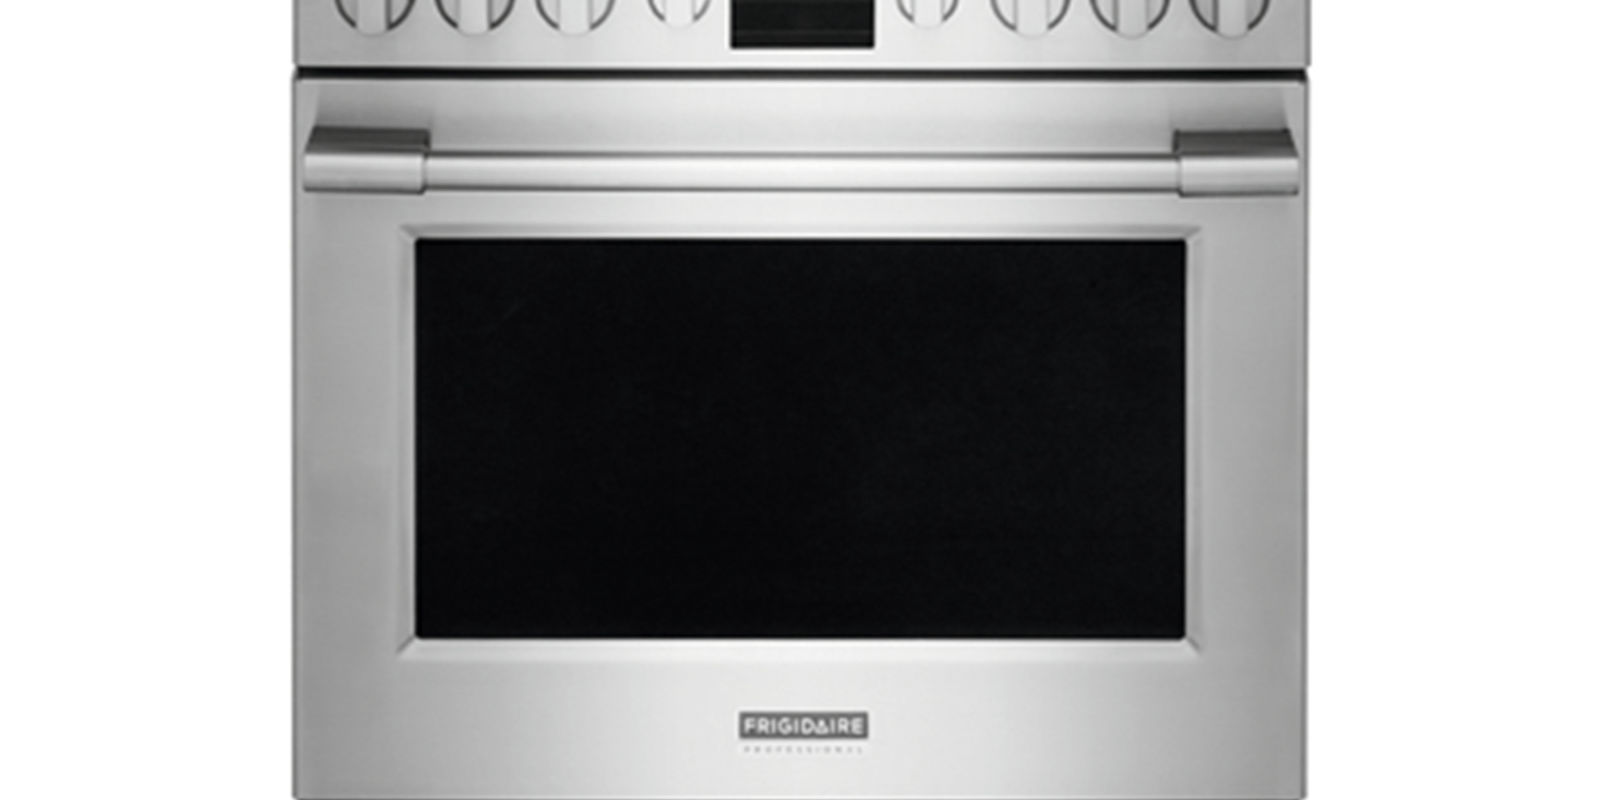 frigidaire gas stove fggf3054mf Frigidaire oven fgf328gmd wont heat up all the stove top gas burners work fine, the bottom glows like it is working, and the oven will get warm it.